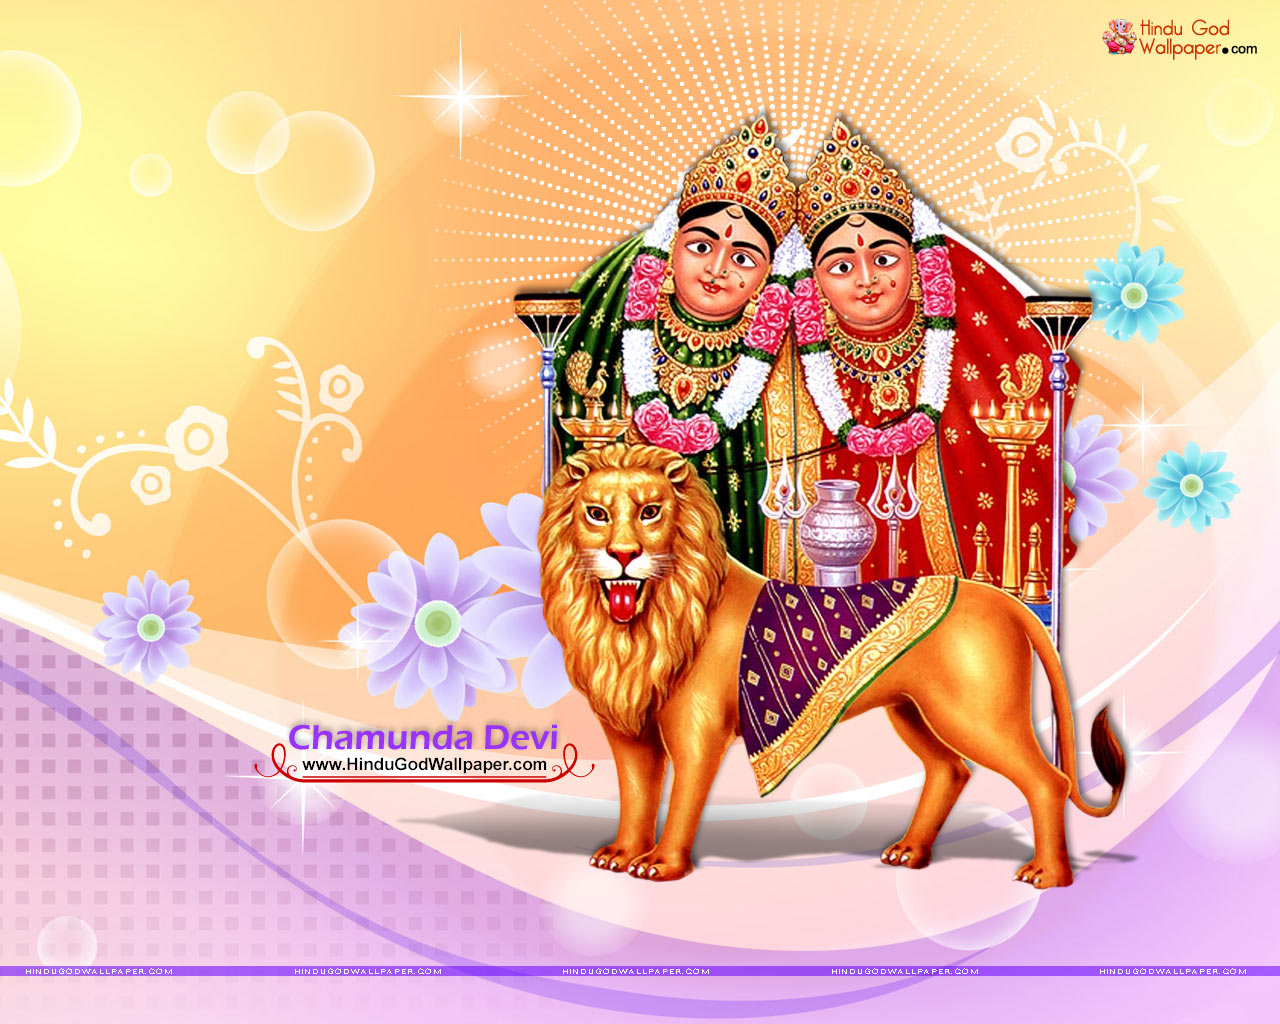 chamunda devi wallpapers